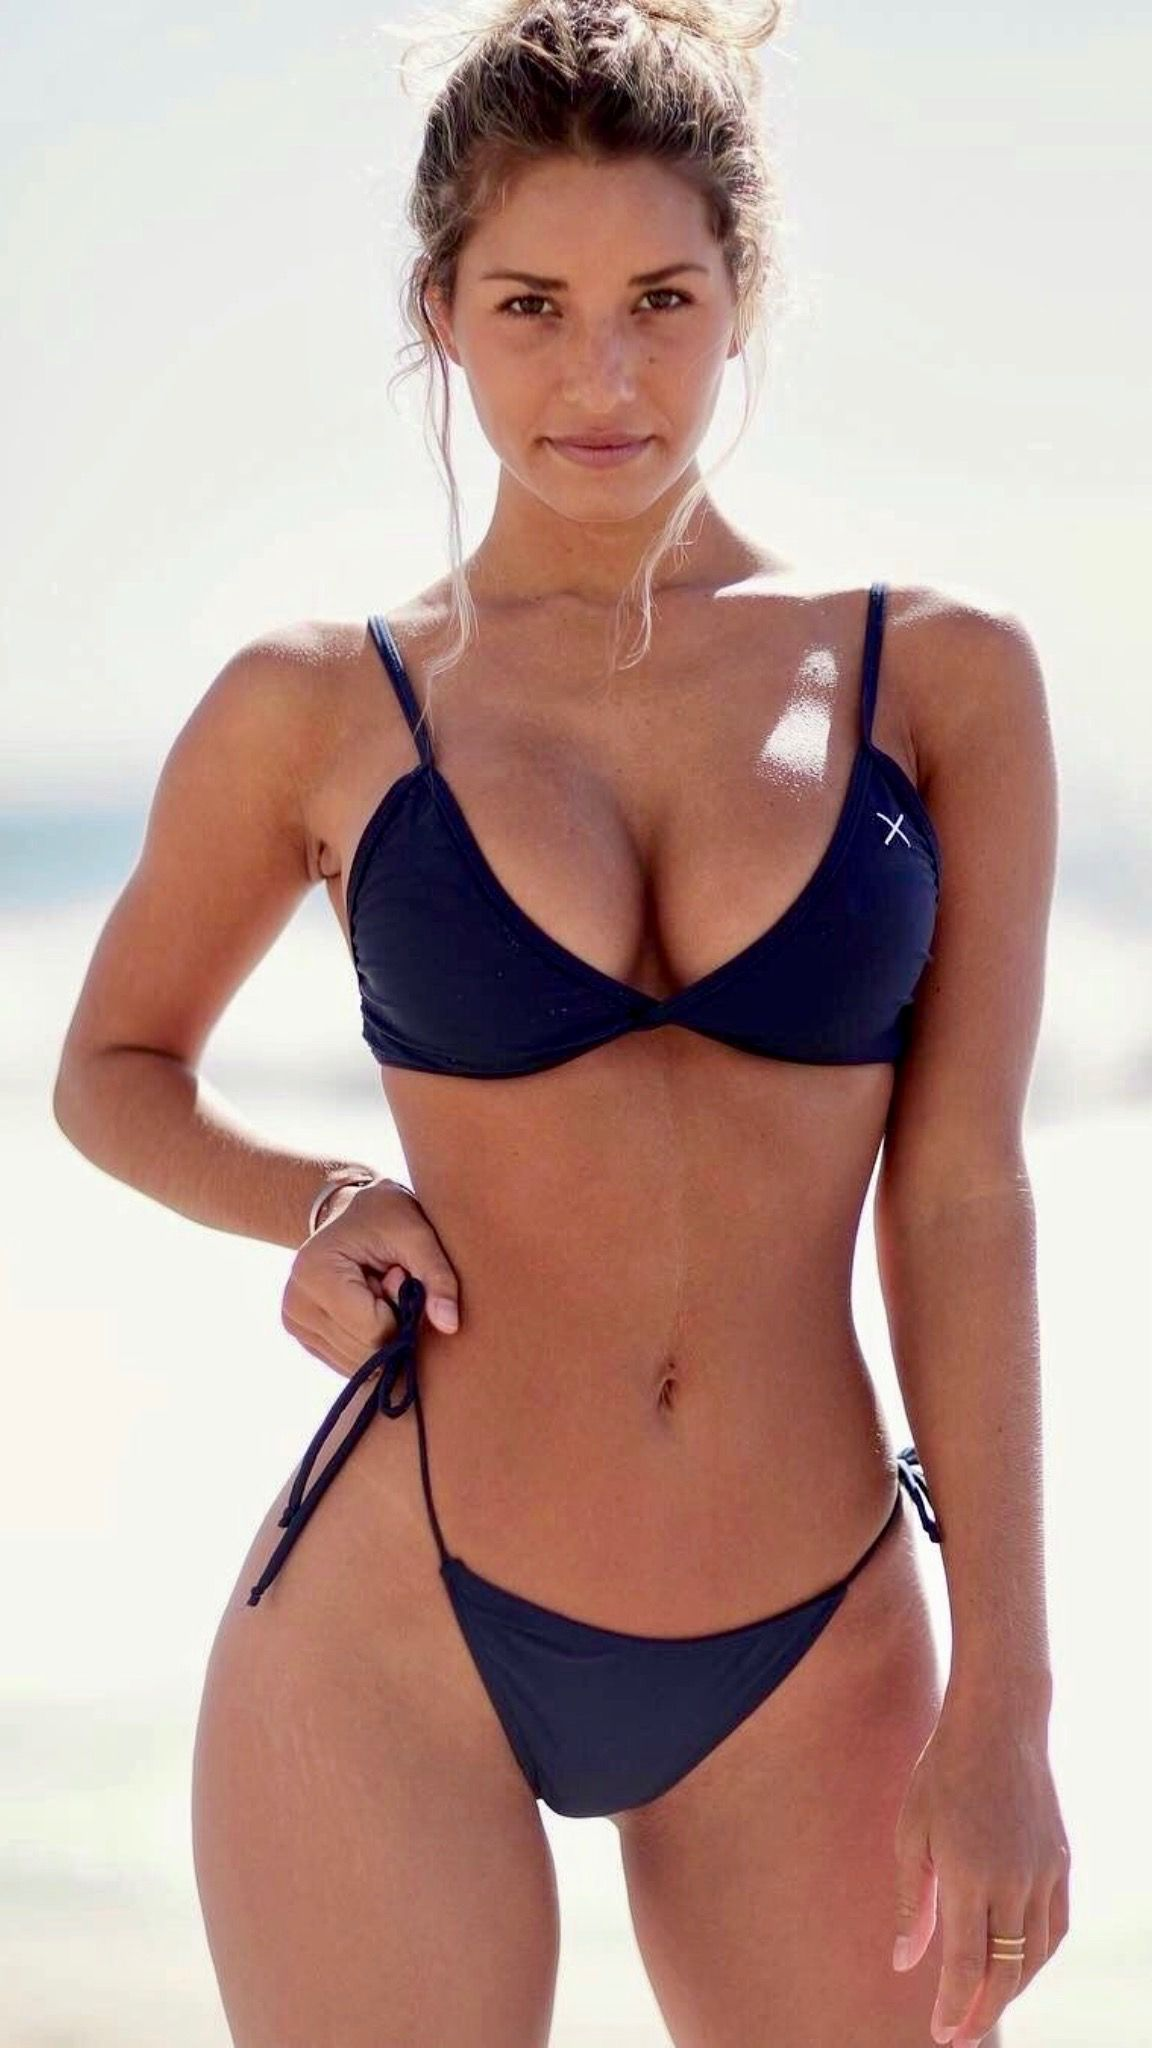 Sierra Skye's Top 50 Designer Bikinis and Swimsuits ...